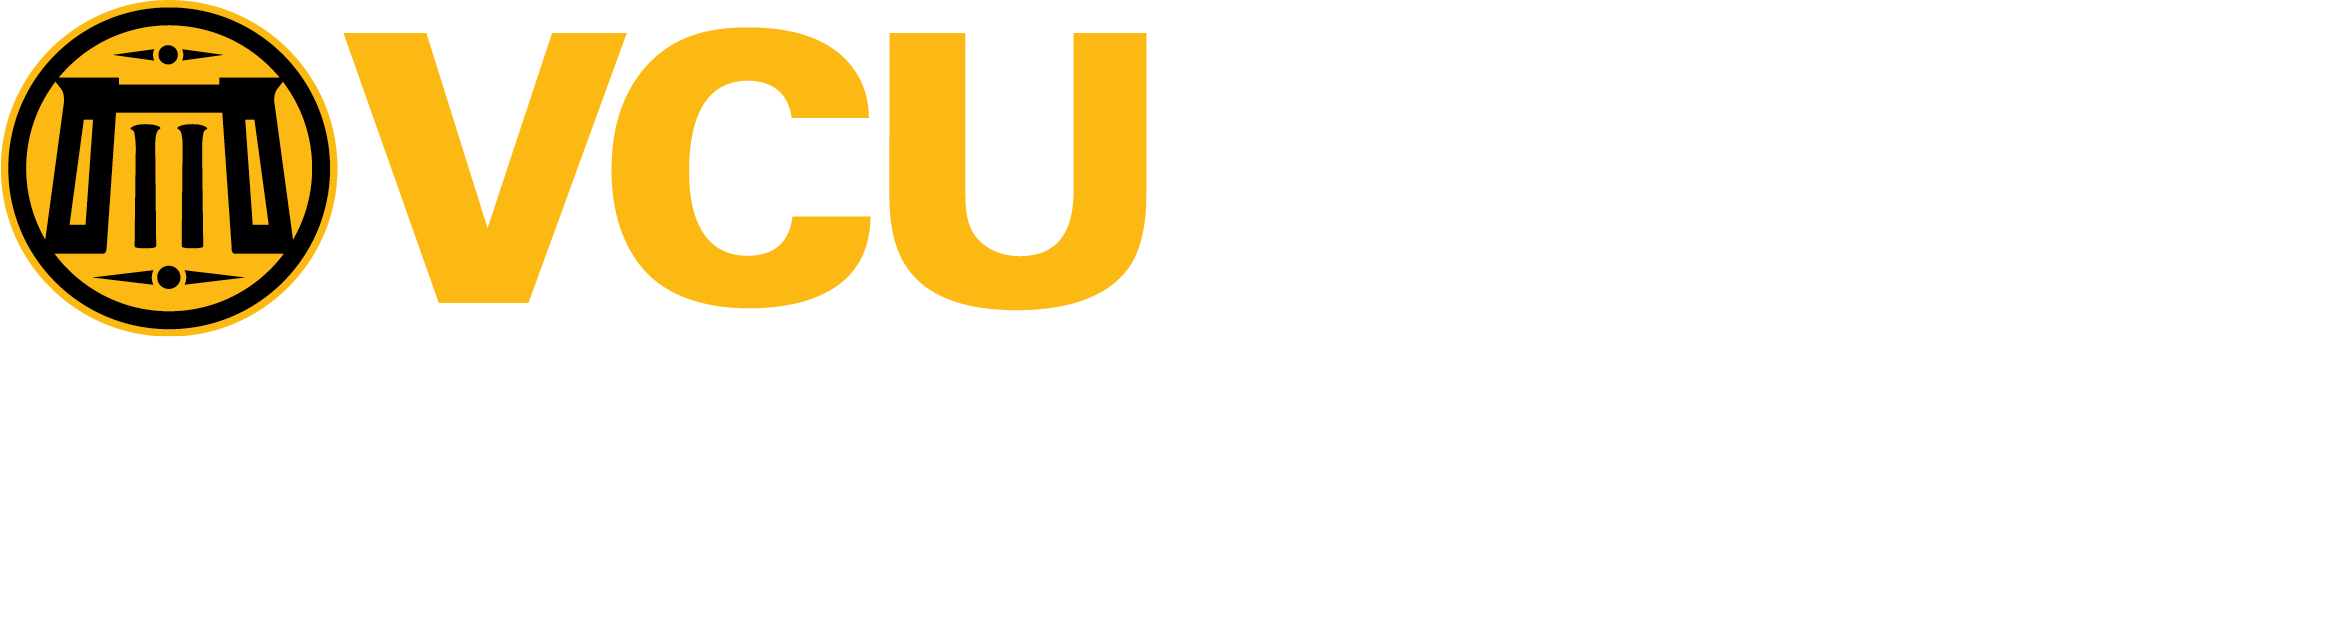 VCU Virginia Institute for Psychiatric and Behavioral Genetics